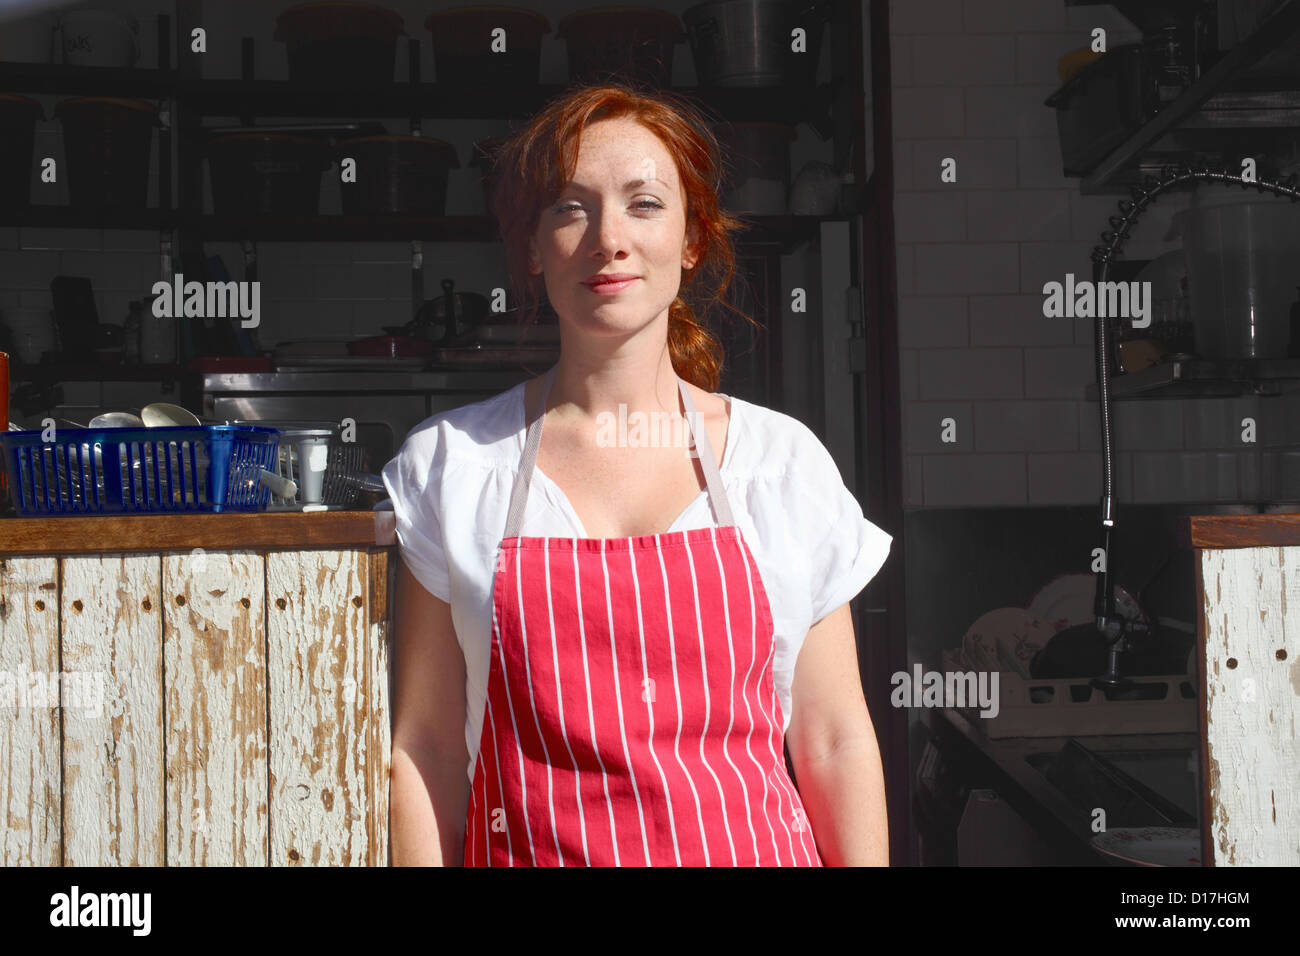 Woman in apron working outdoors - Stock Image